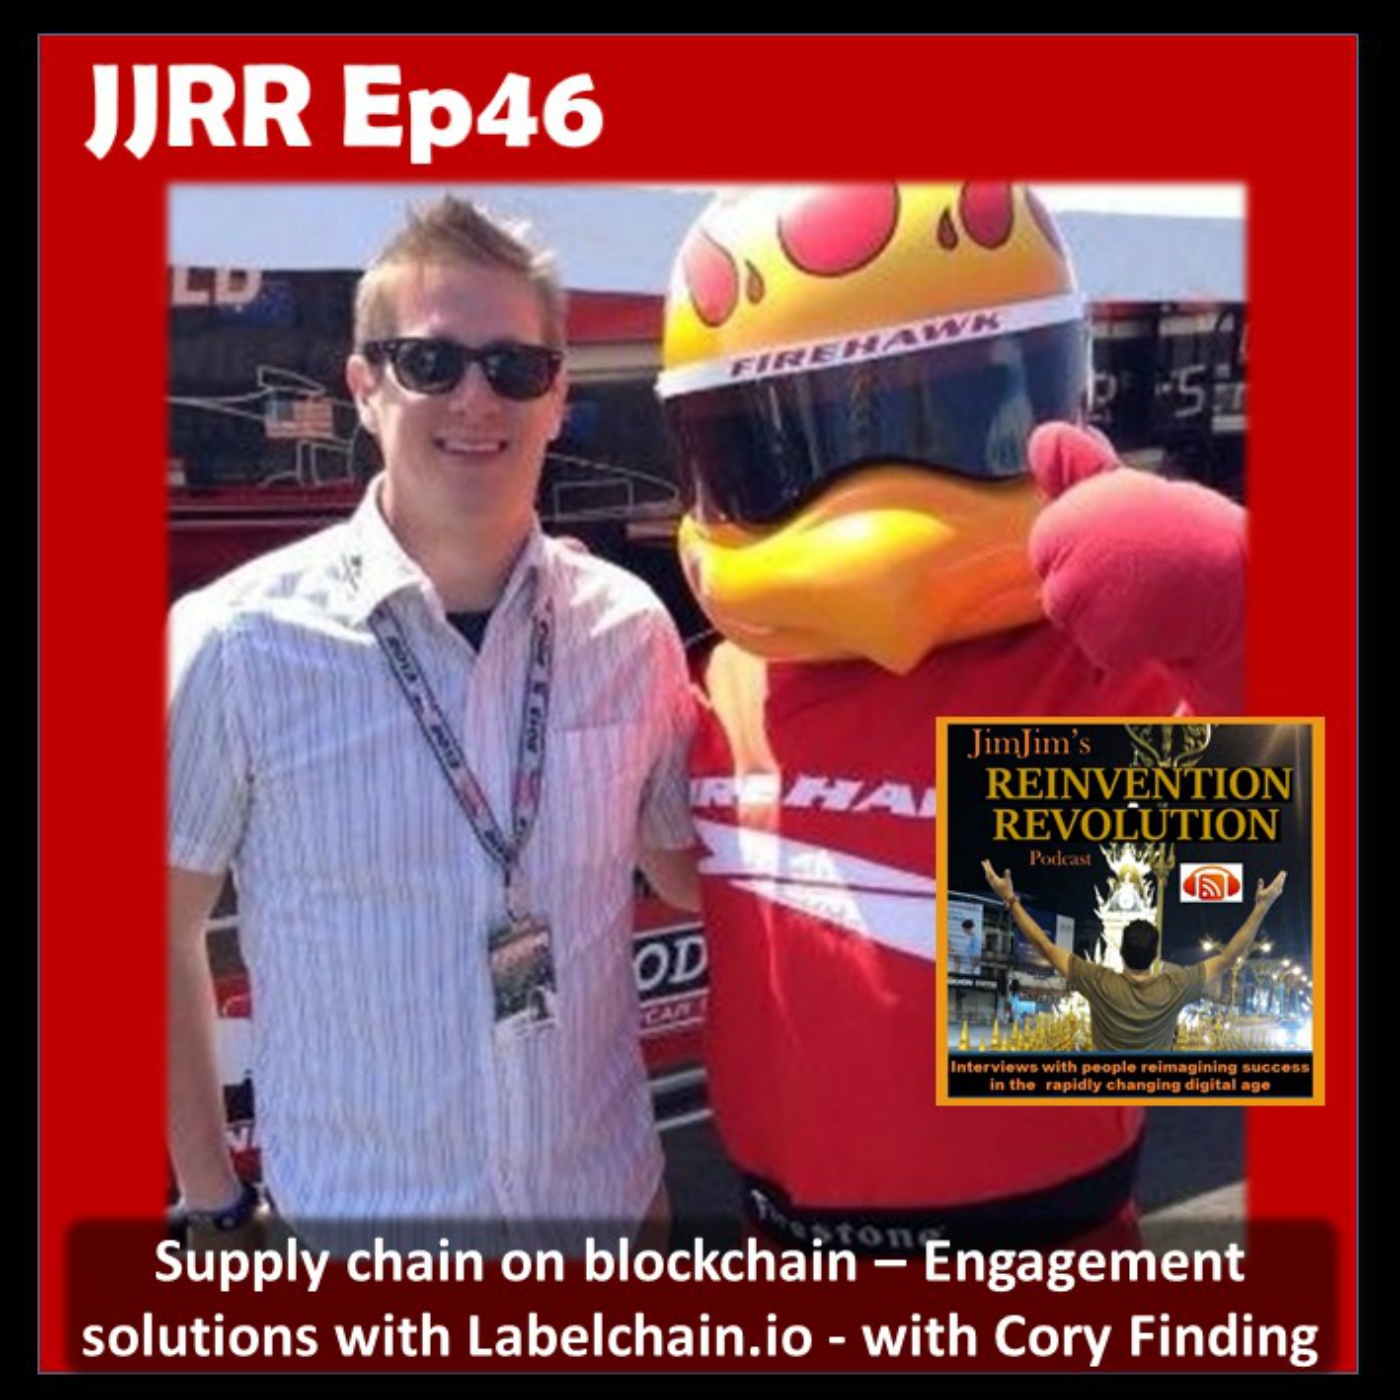 JJRR Ep46 Supply chain on blockchain – Engagement solutions with Labelchain.io – with Cory Finding